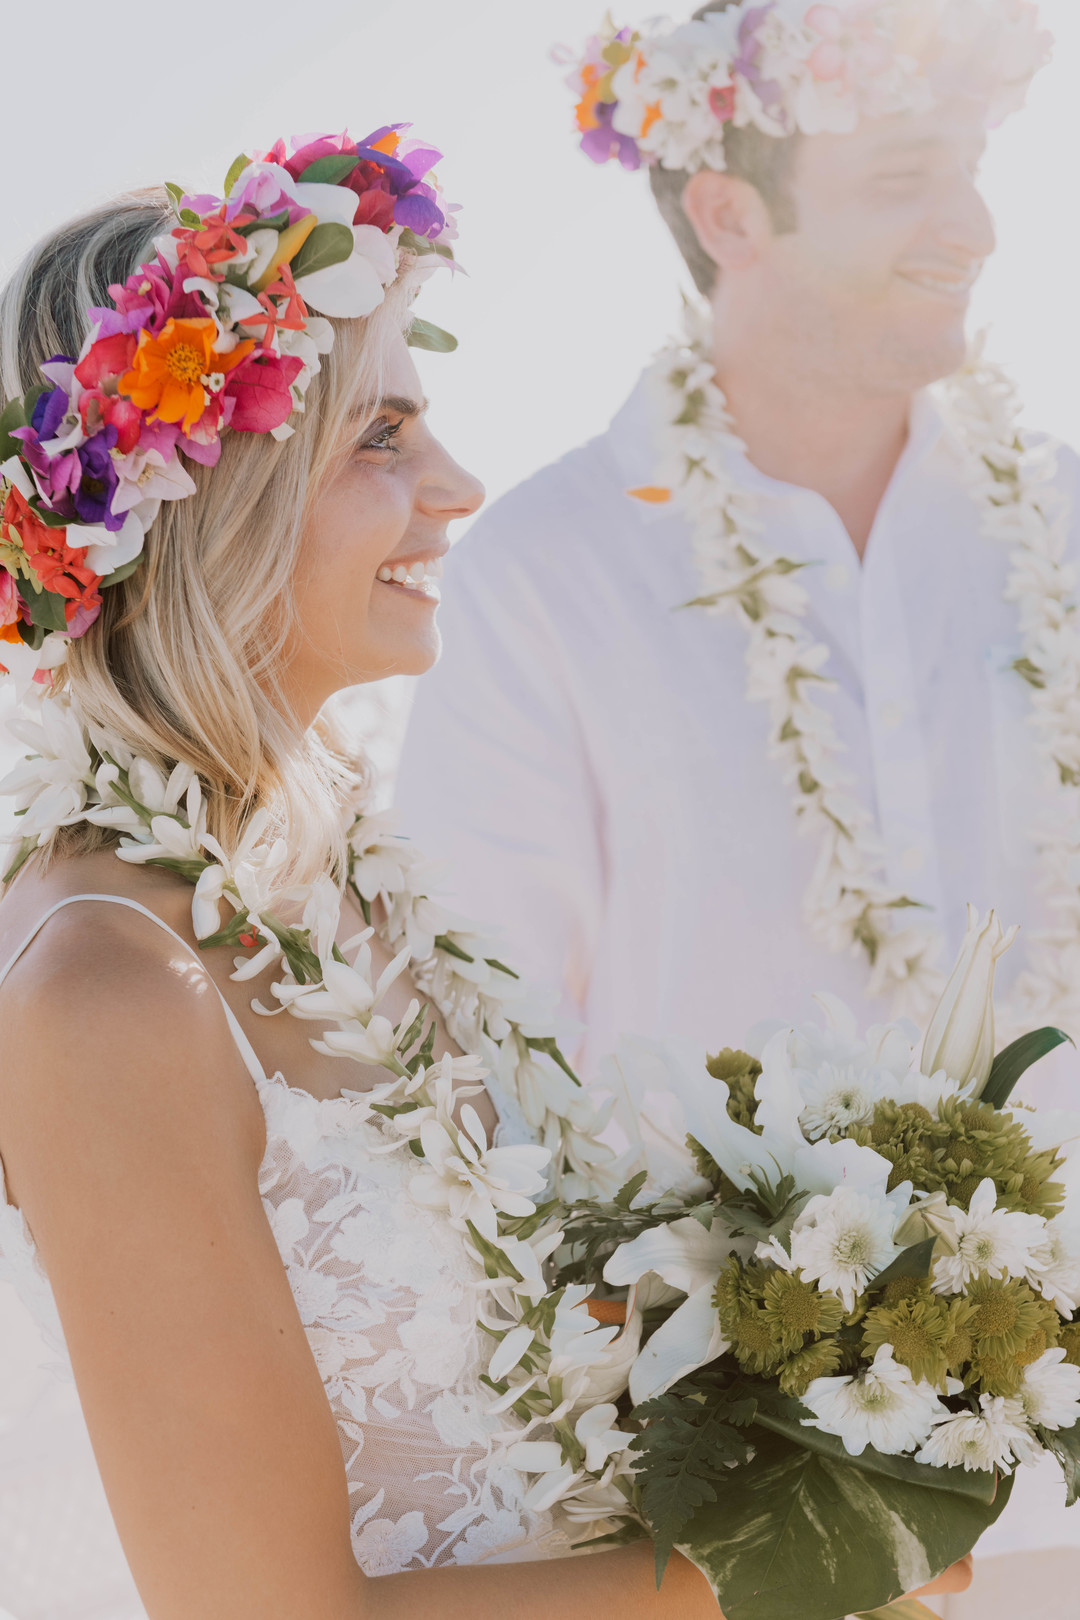 bride smiling during ceremony with a colorful flower crown